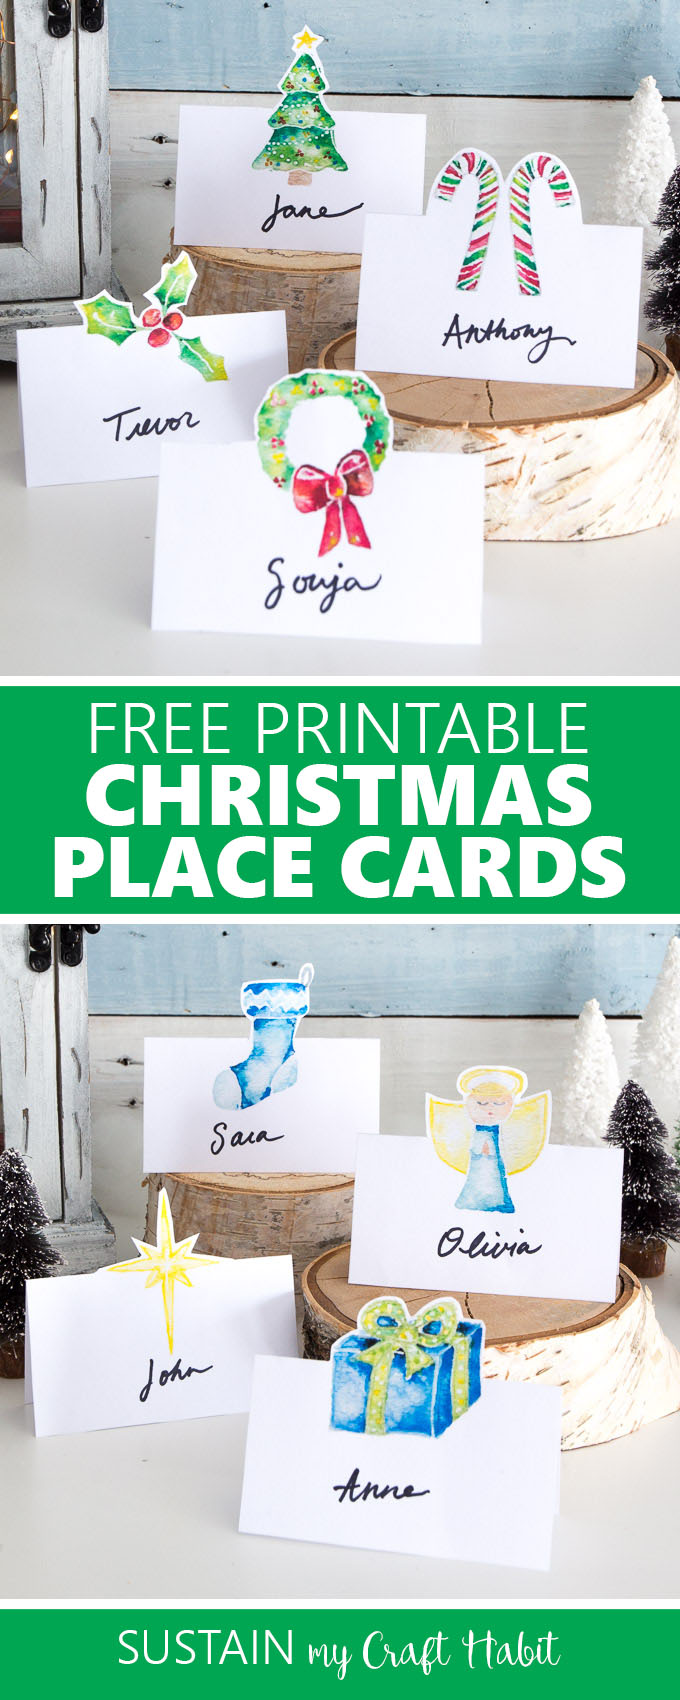 photo relating to Free Printable Name Cards identify Absolutely free Printable Xmas Point Playing cards Preserve My Craft Behavior